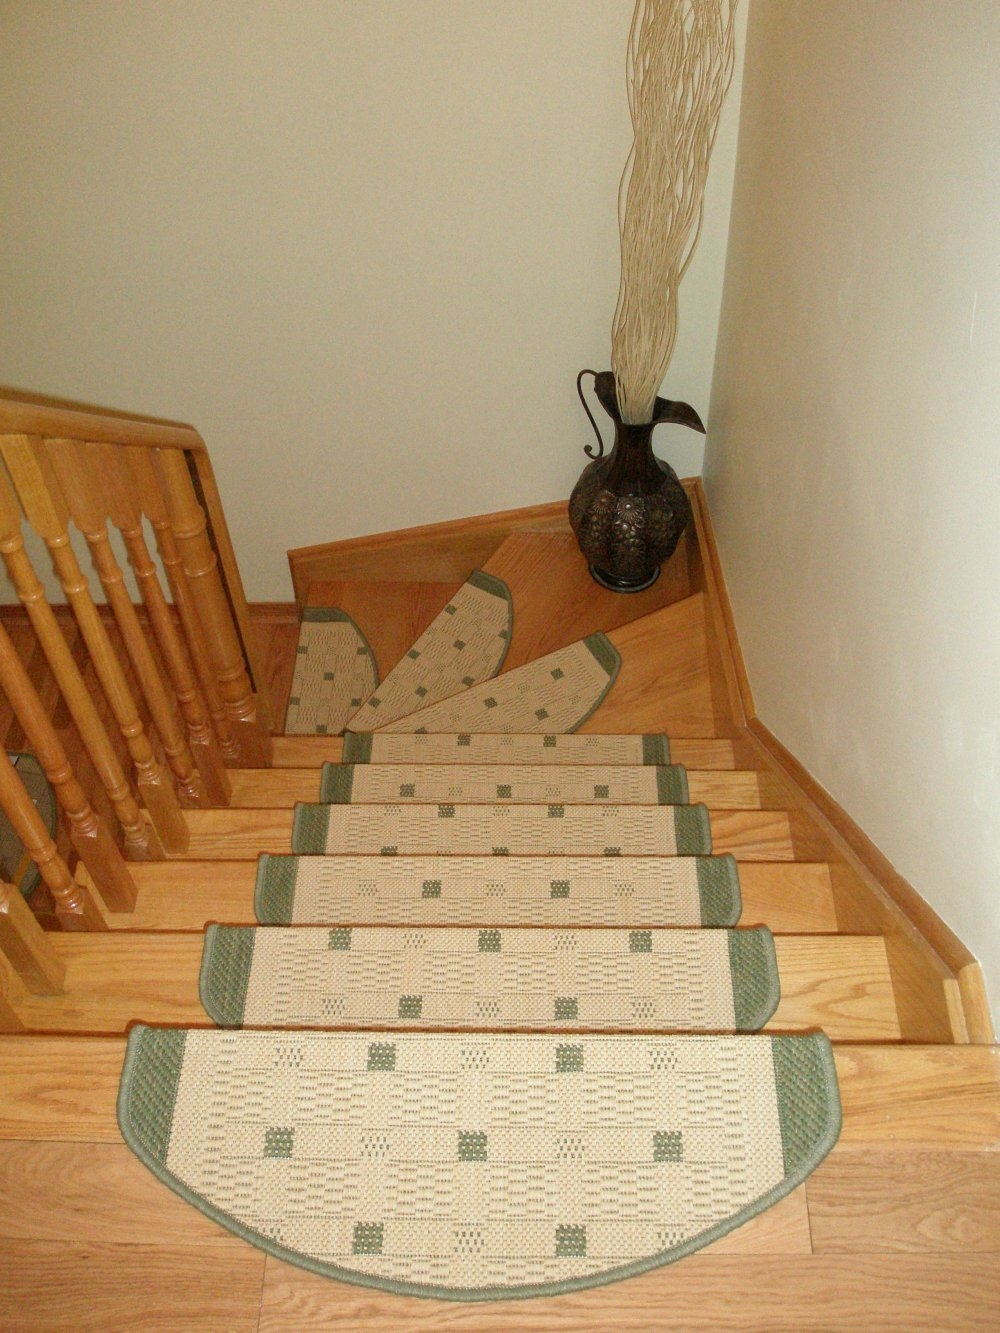 Carpet Stair Treads Stair Mats Stair Rugs With Regard To Stair Tread Rug Pads (#3 of 20)